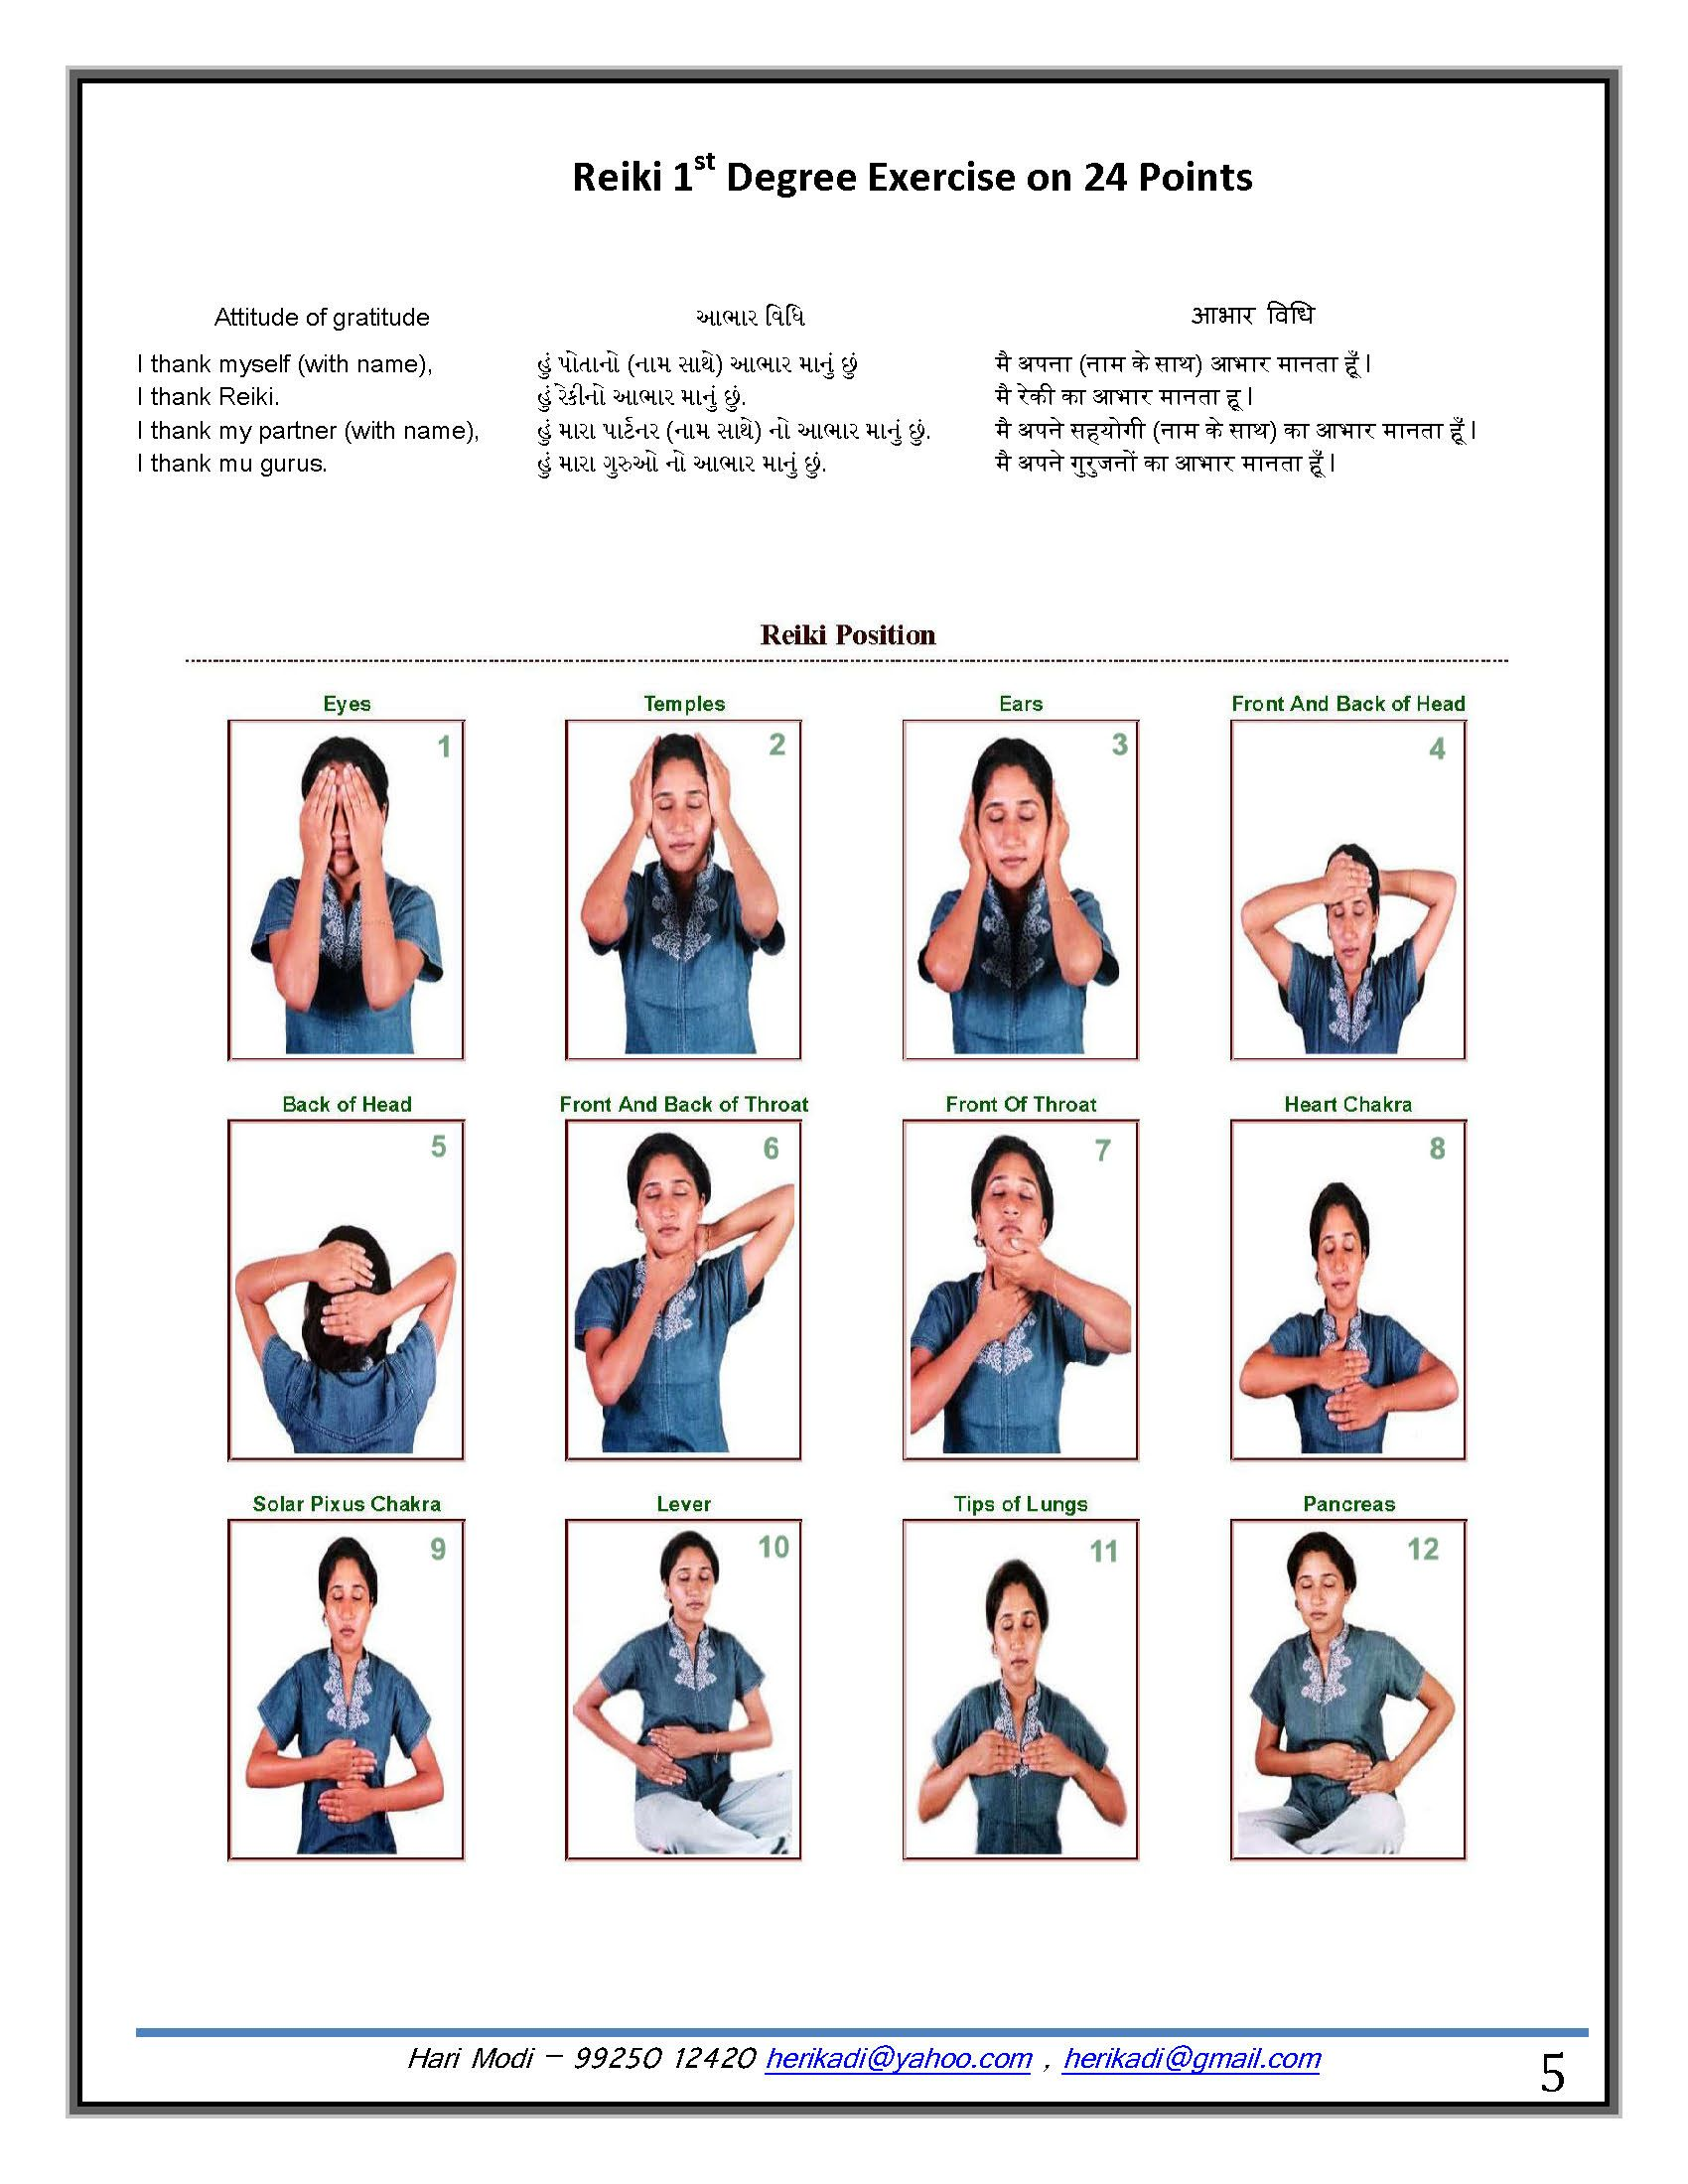 Reiki Hand Position 24 Points Level 1 Part 1 12 Points Posted By Hari Modi 919925012420 Reiki Meditation Reiki Reiki Healing